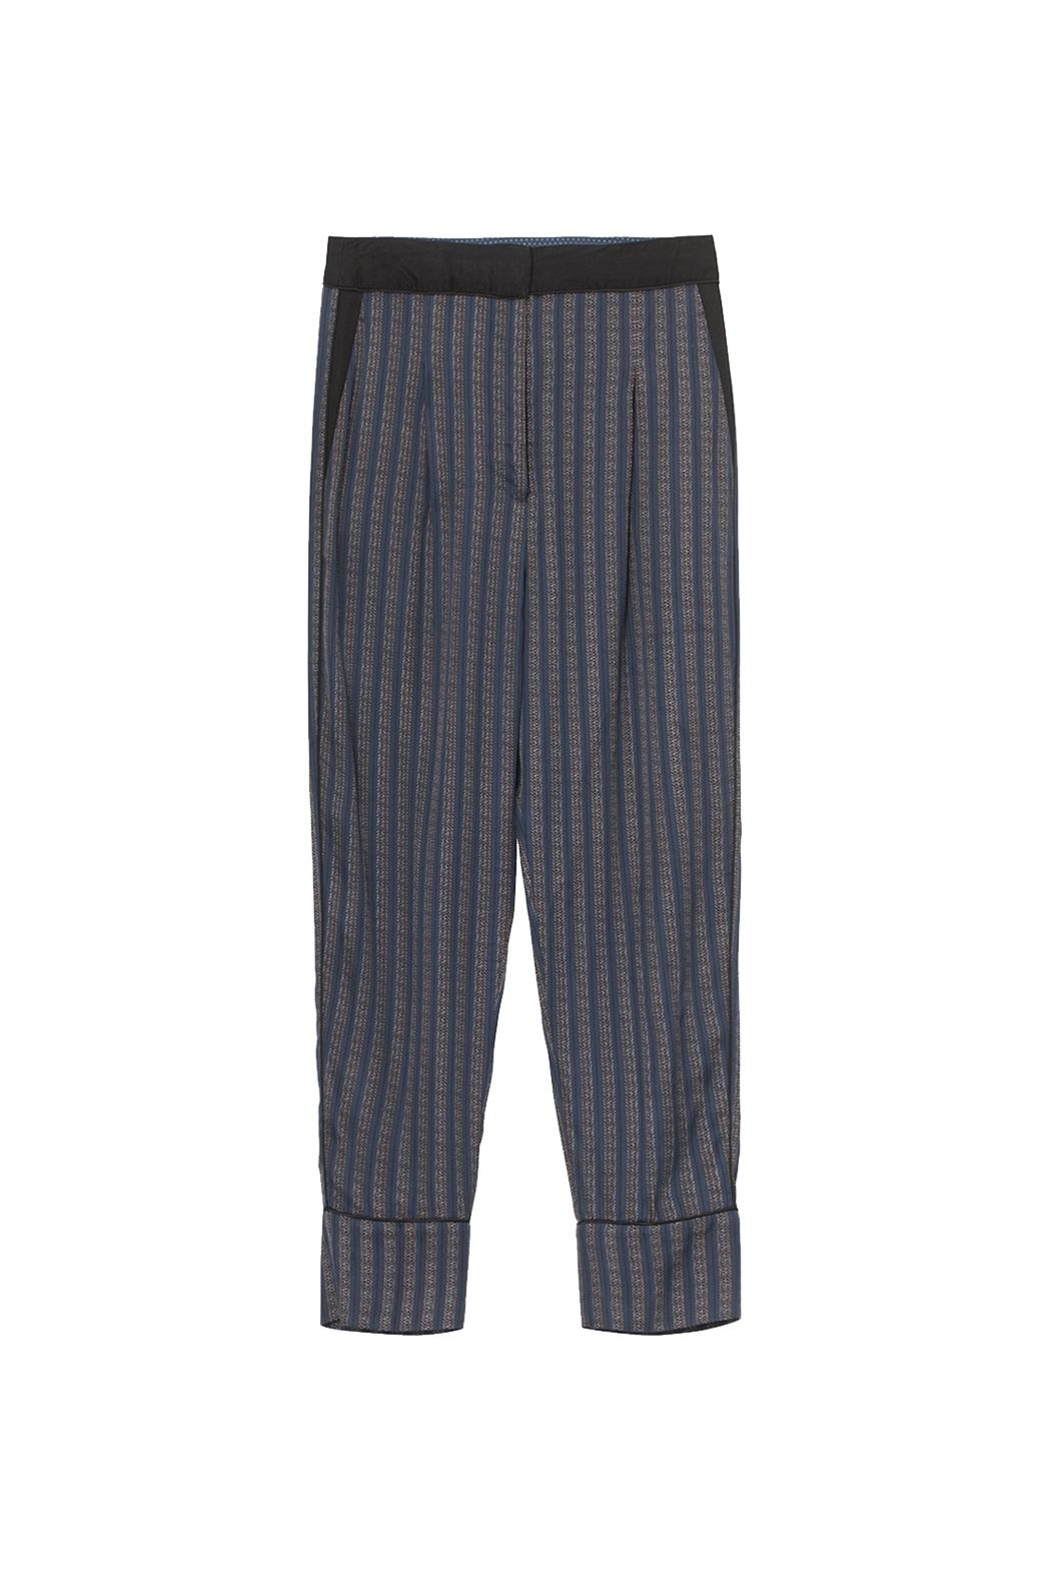 Munthe Hilary Stripe Pants - Main Image